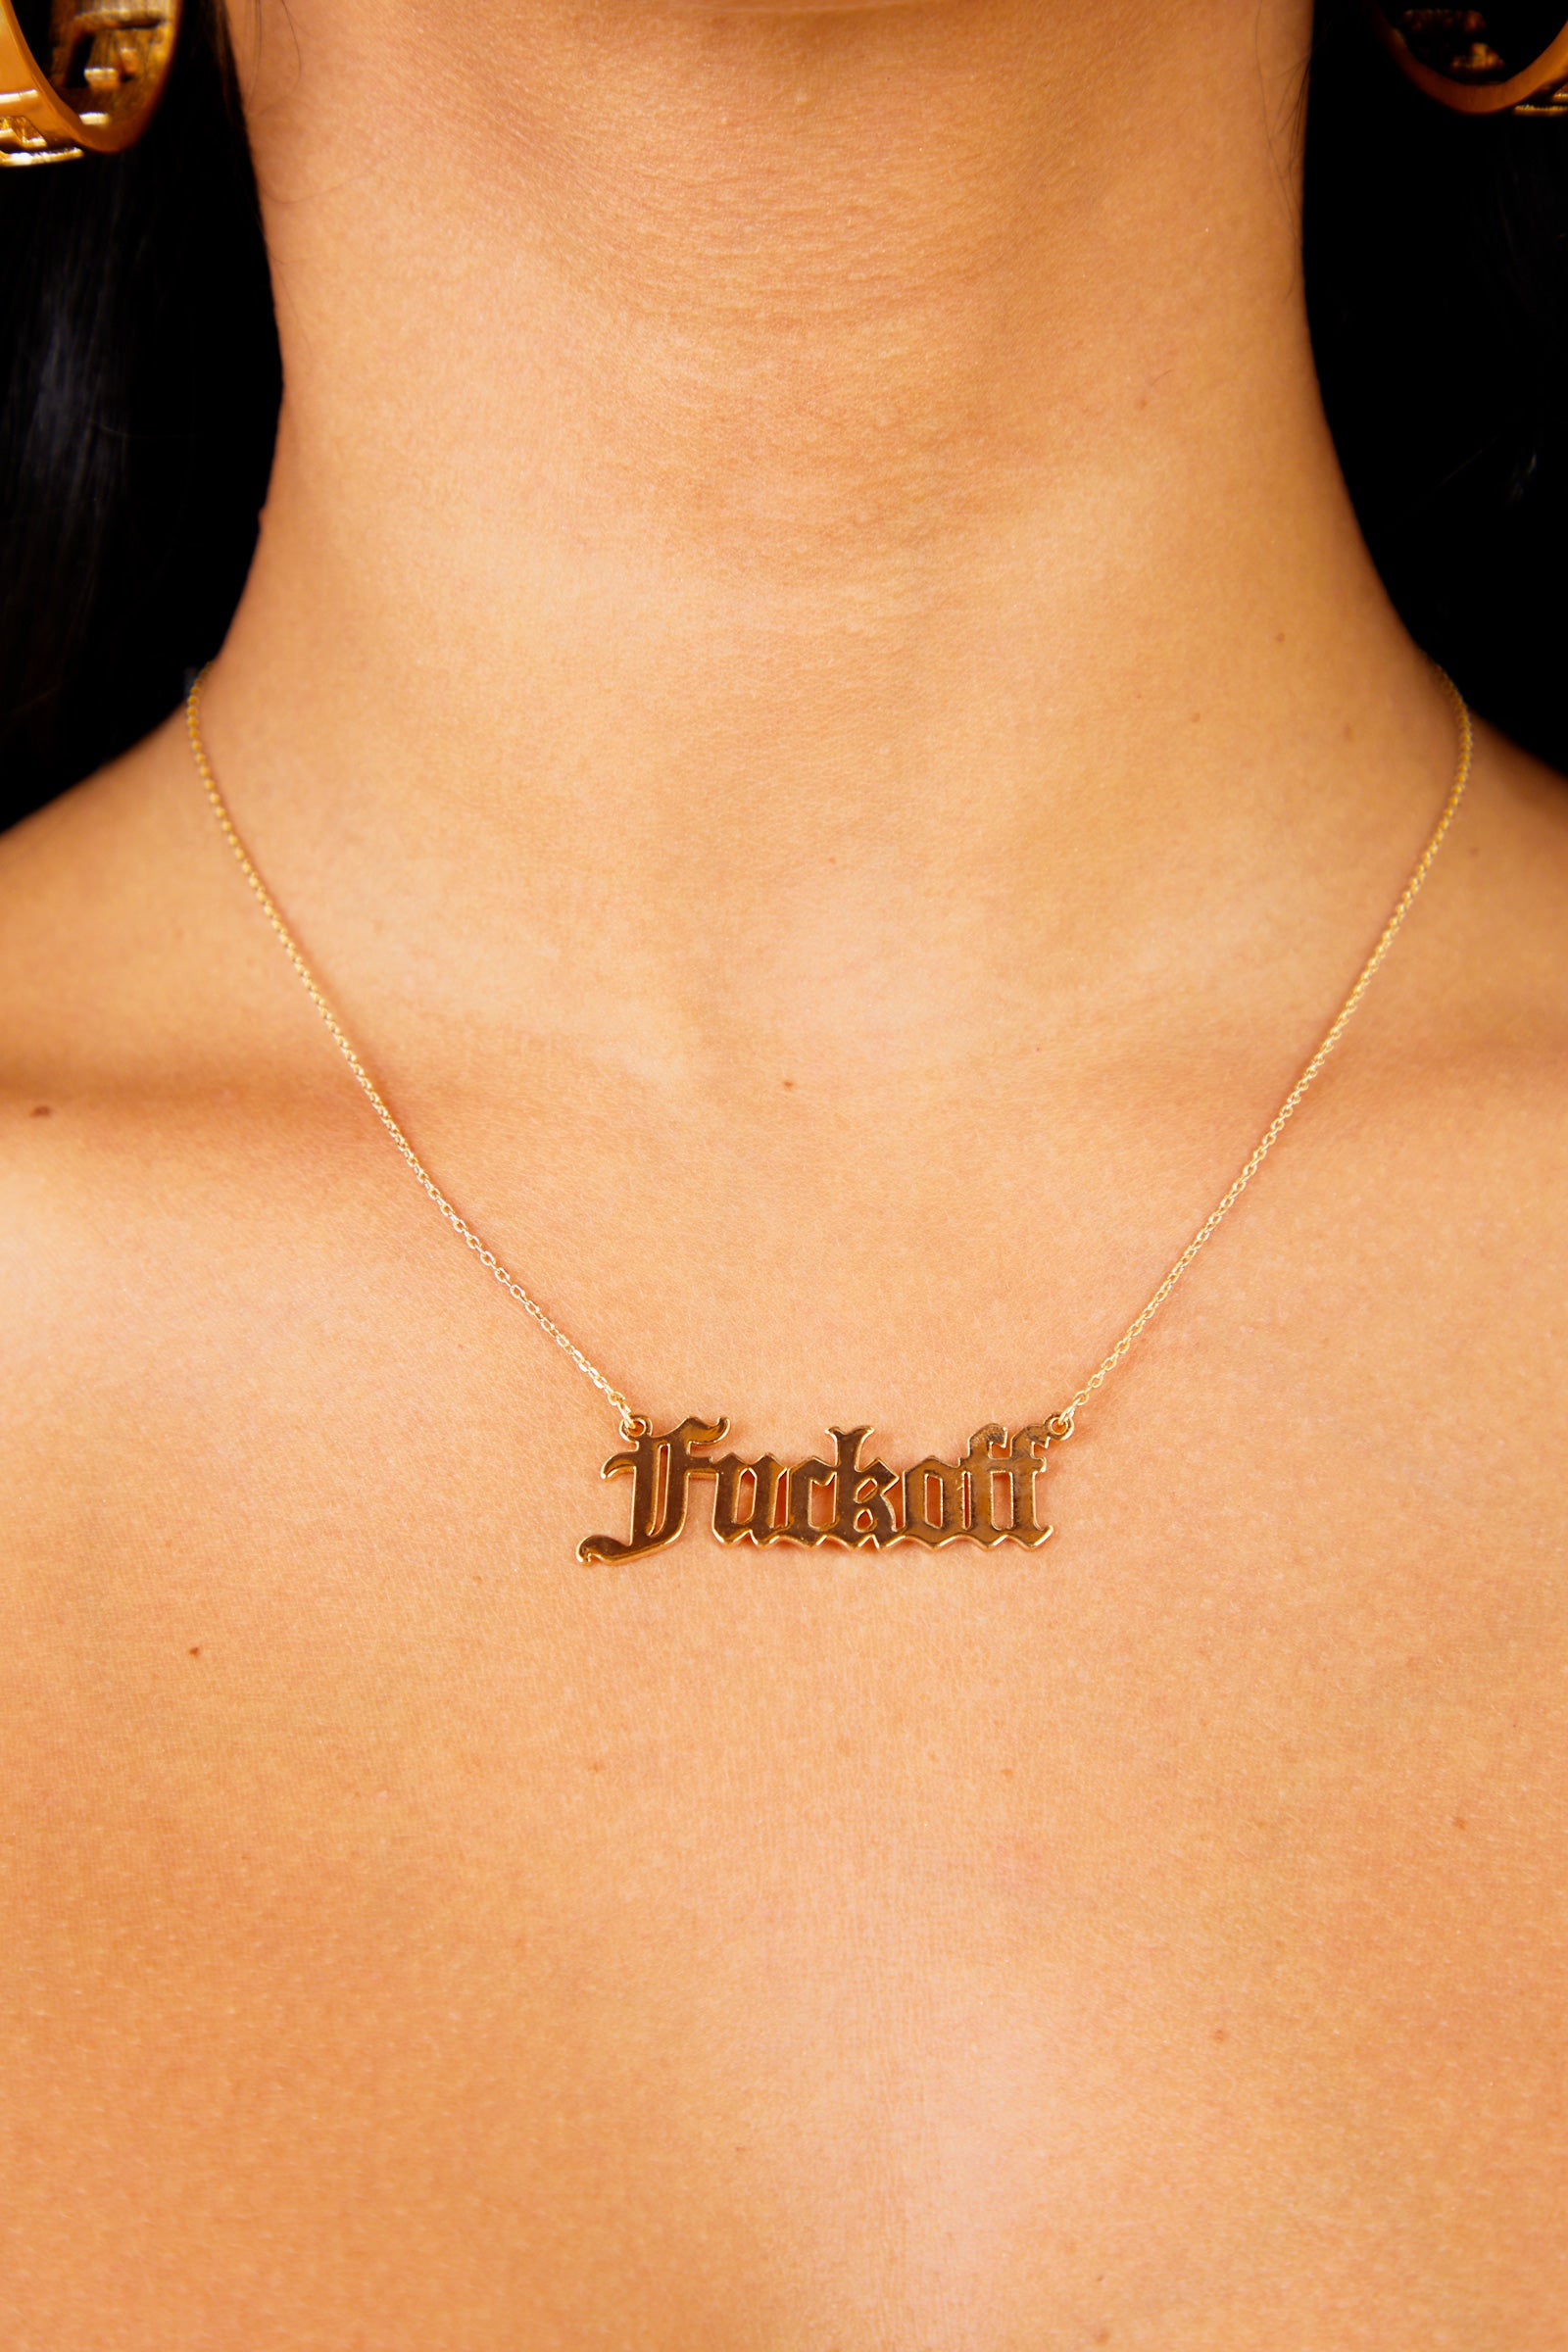 F**k Off Pendant Necklace - Gold